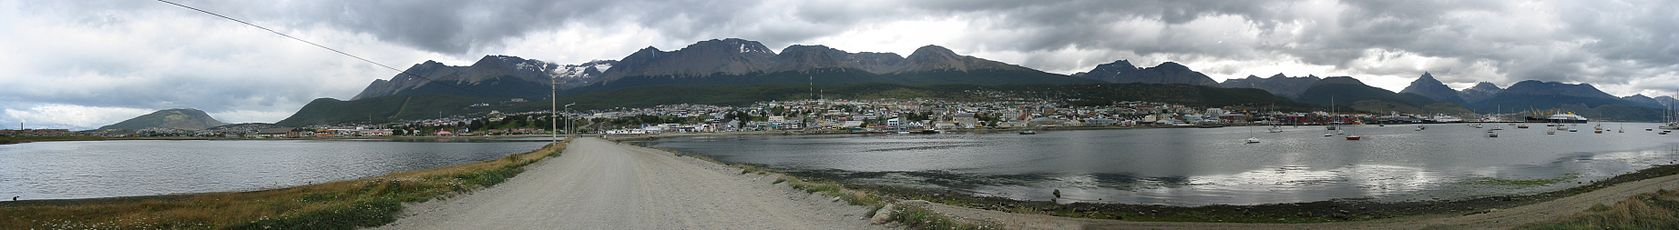 A small city across a gray waterway under lowering gray clouds. A road leads to the city across a causeway. Mountains with snow and a low treeline form the backdrop. A few boats are in the water.